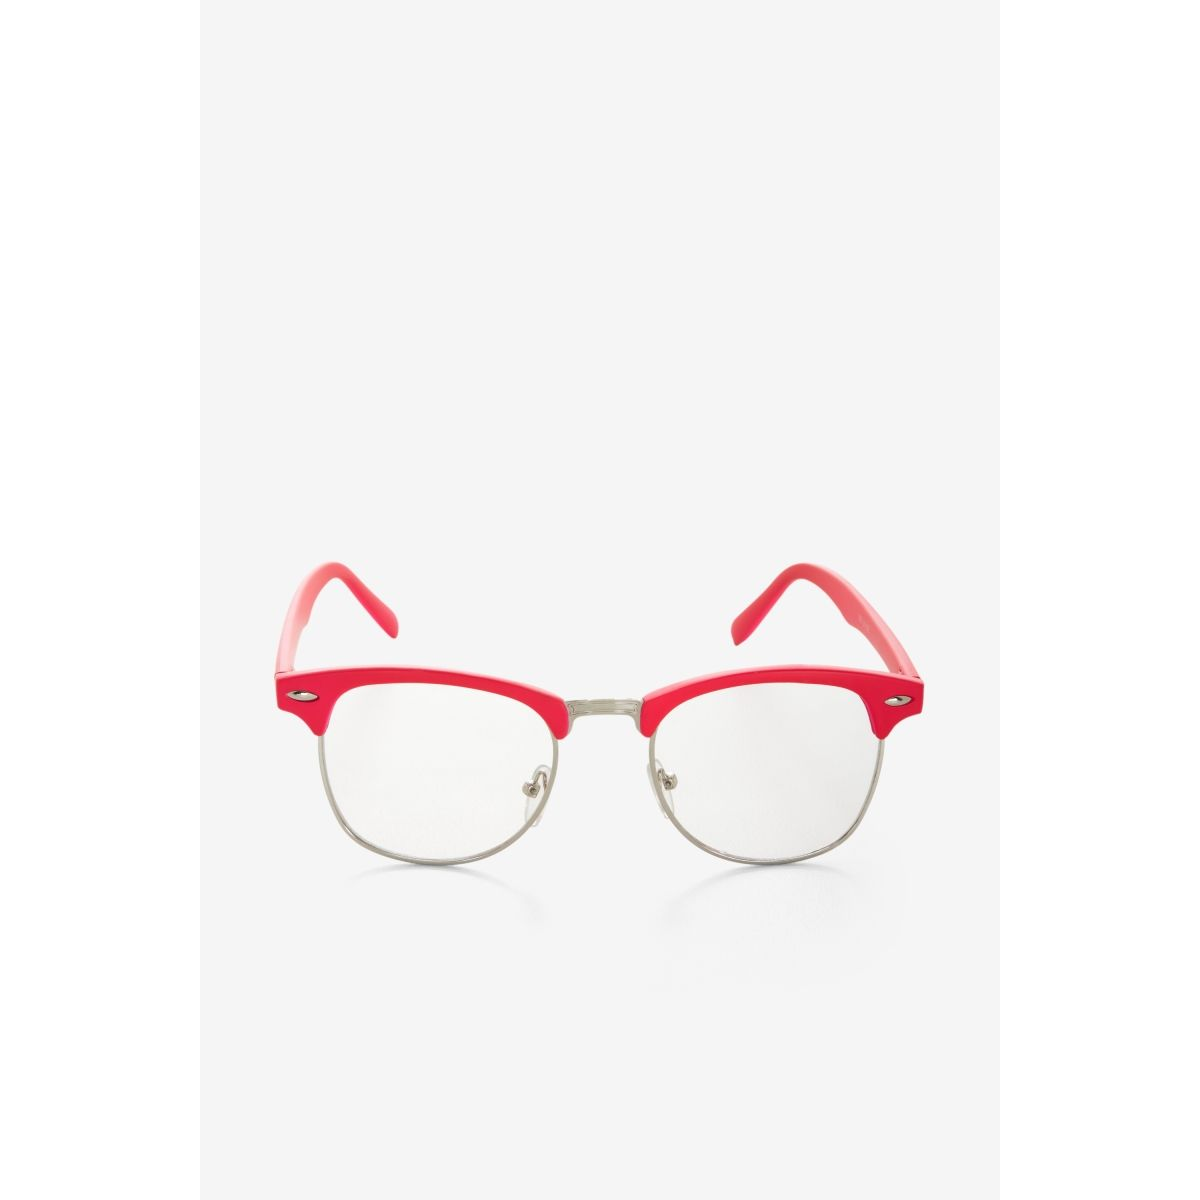 ec06478538c BCBGMAXAZRIA - SHOP BY CATEGORY  ACCESSORIES  VIEW ALL  BCBGENERATION  PINK-RIM CLEAR GLASSES